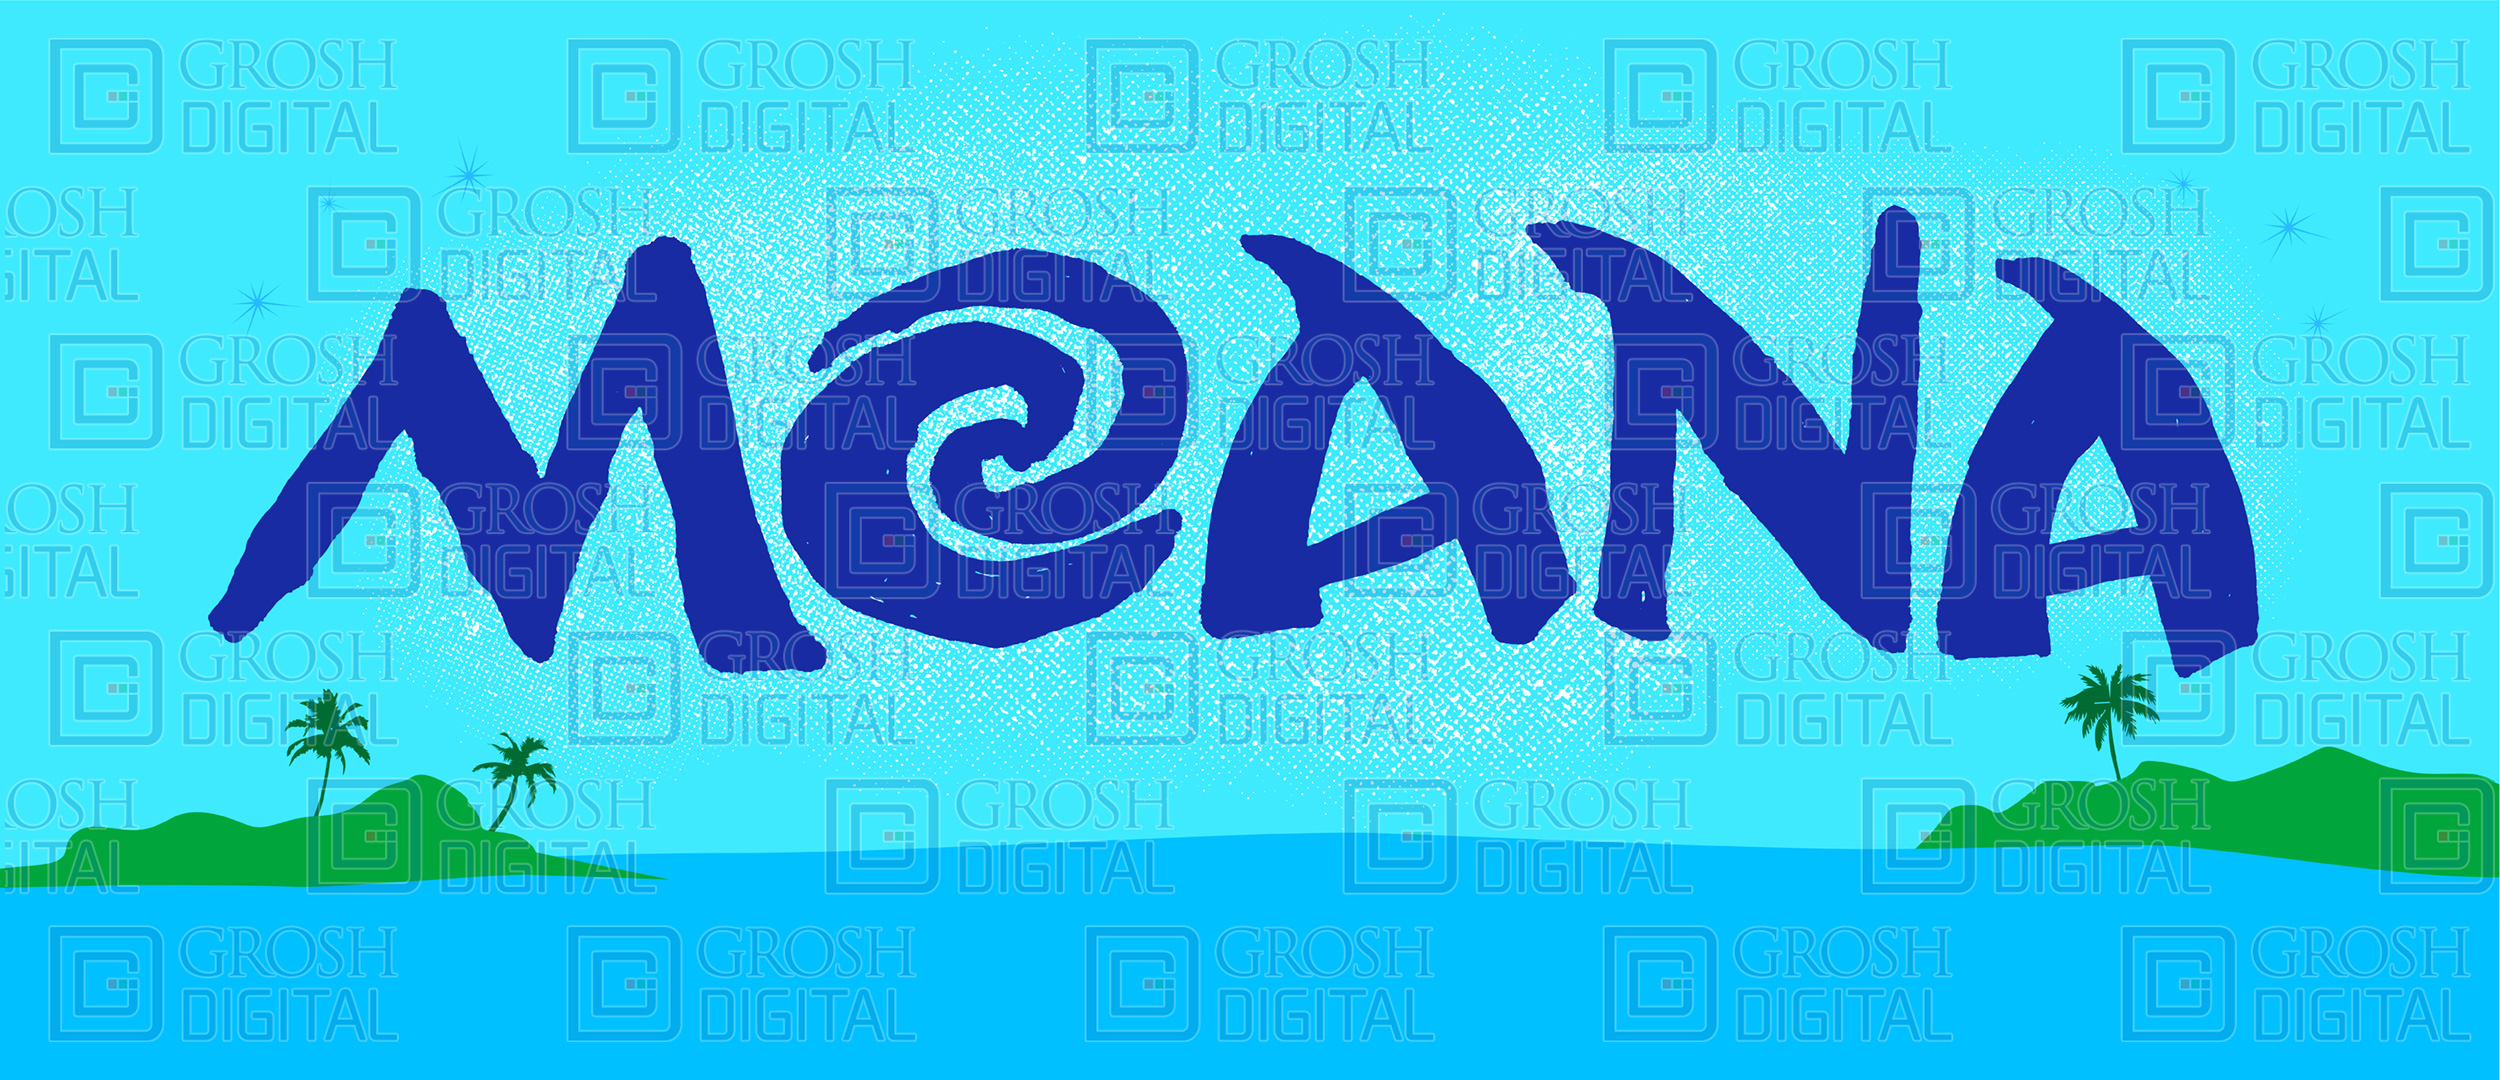 Moana Show Curtain Projected Backdrops Grosh Digital